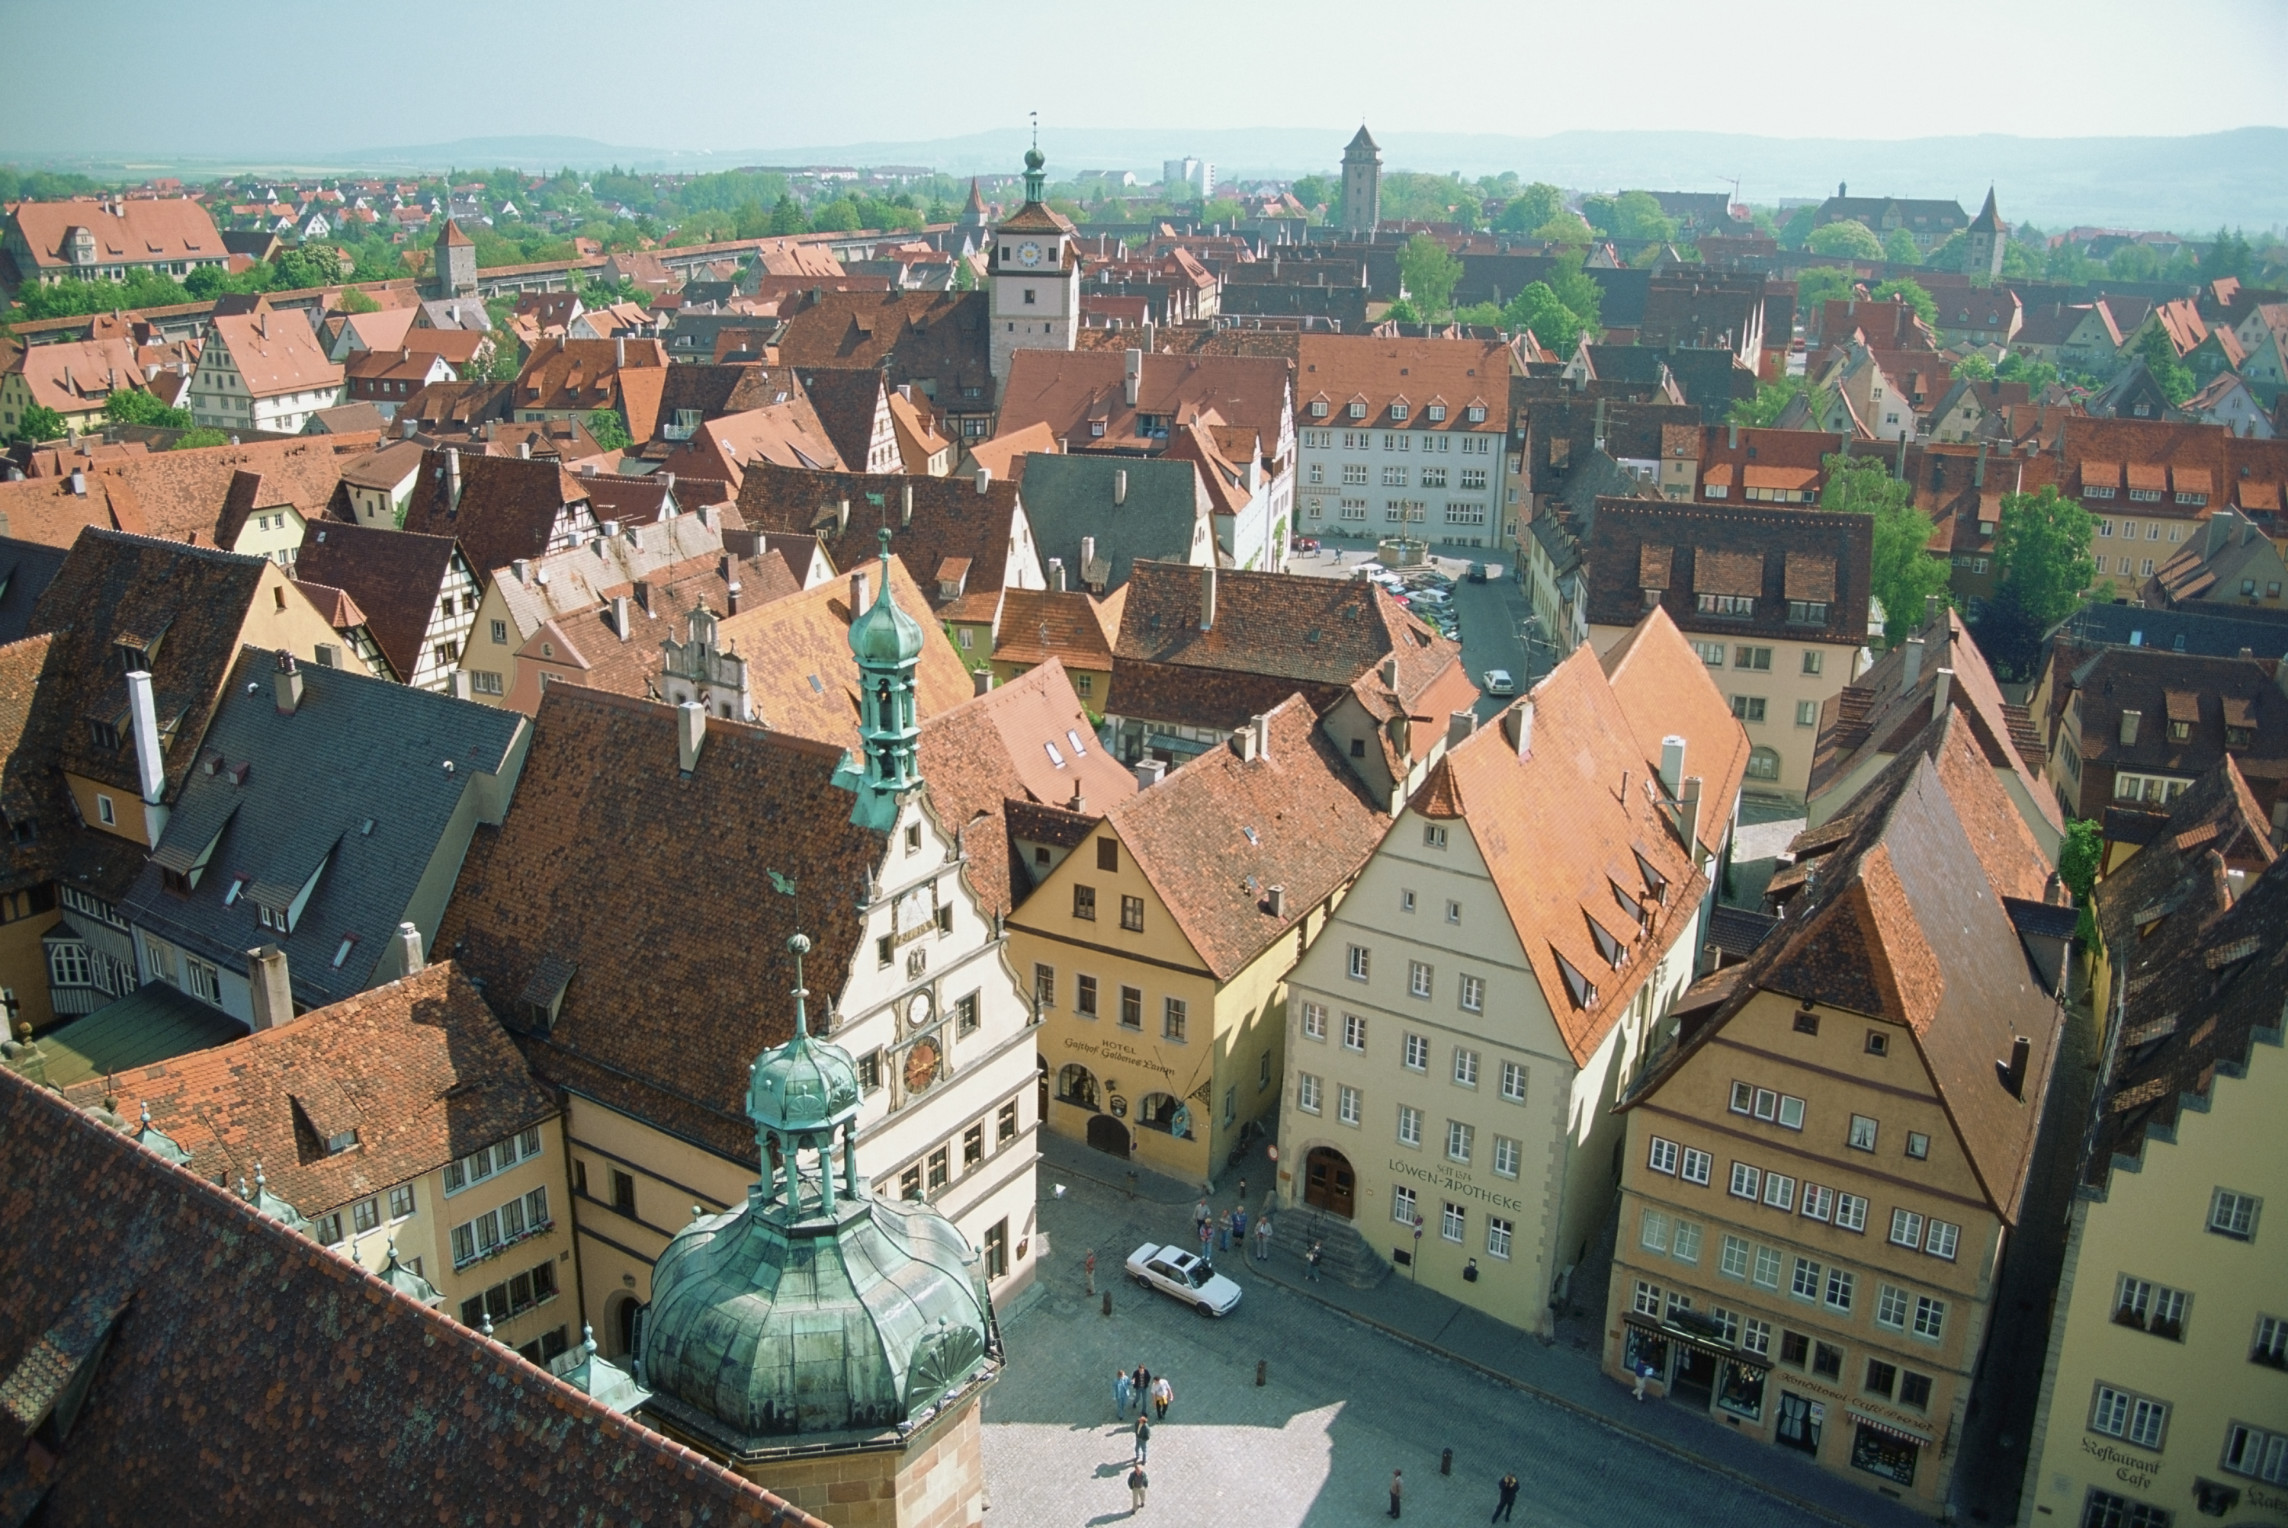 Aerial view of Rothenburg and its town square, Germany